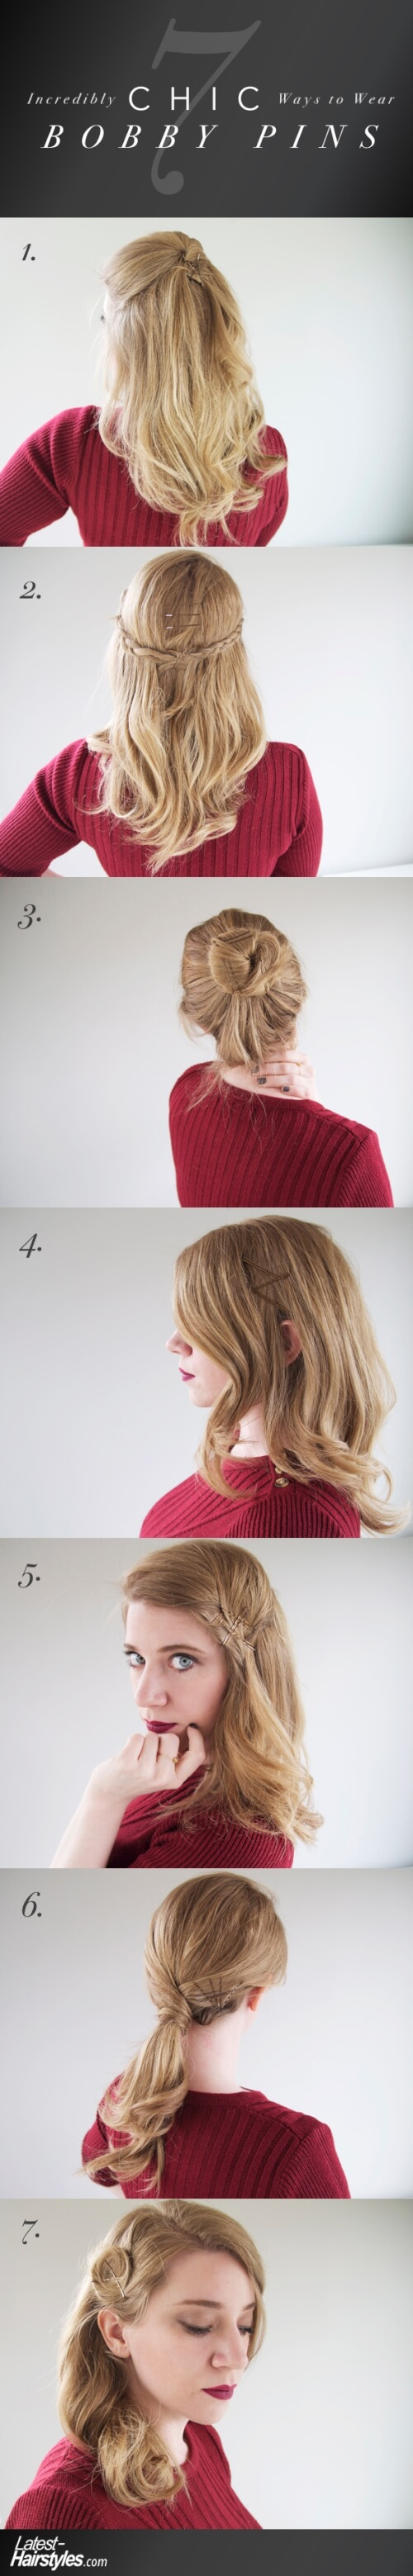 7-chic-bobby-pins